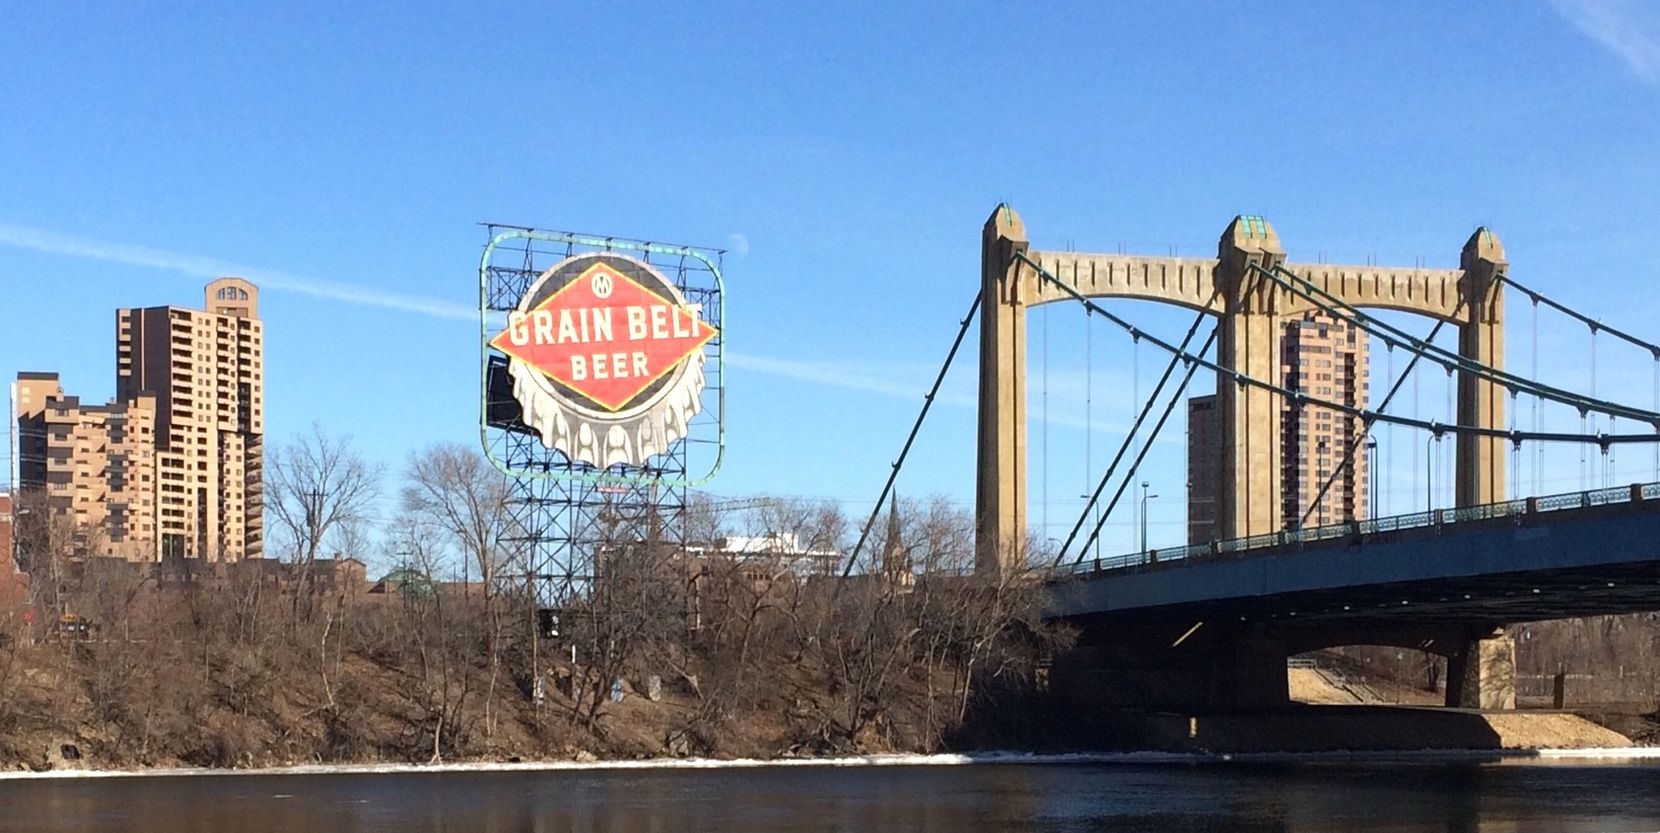 This billboard on Minneapolis' Third Avenue Bridge recalls when Grain Belt beer was brewed in the city. It's now produced by August Schell in New Ulm, Minn.